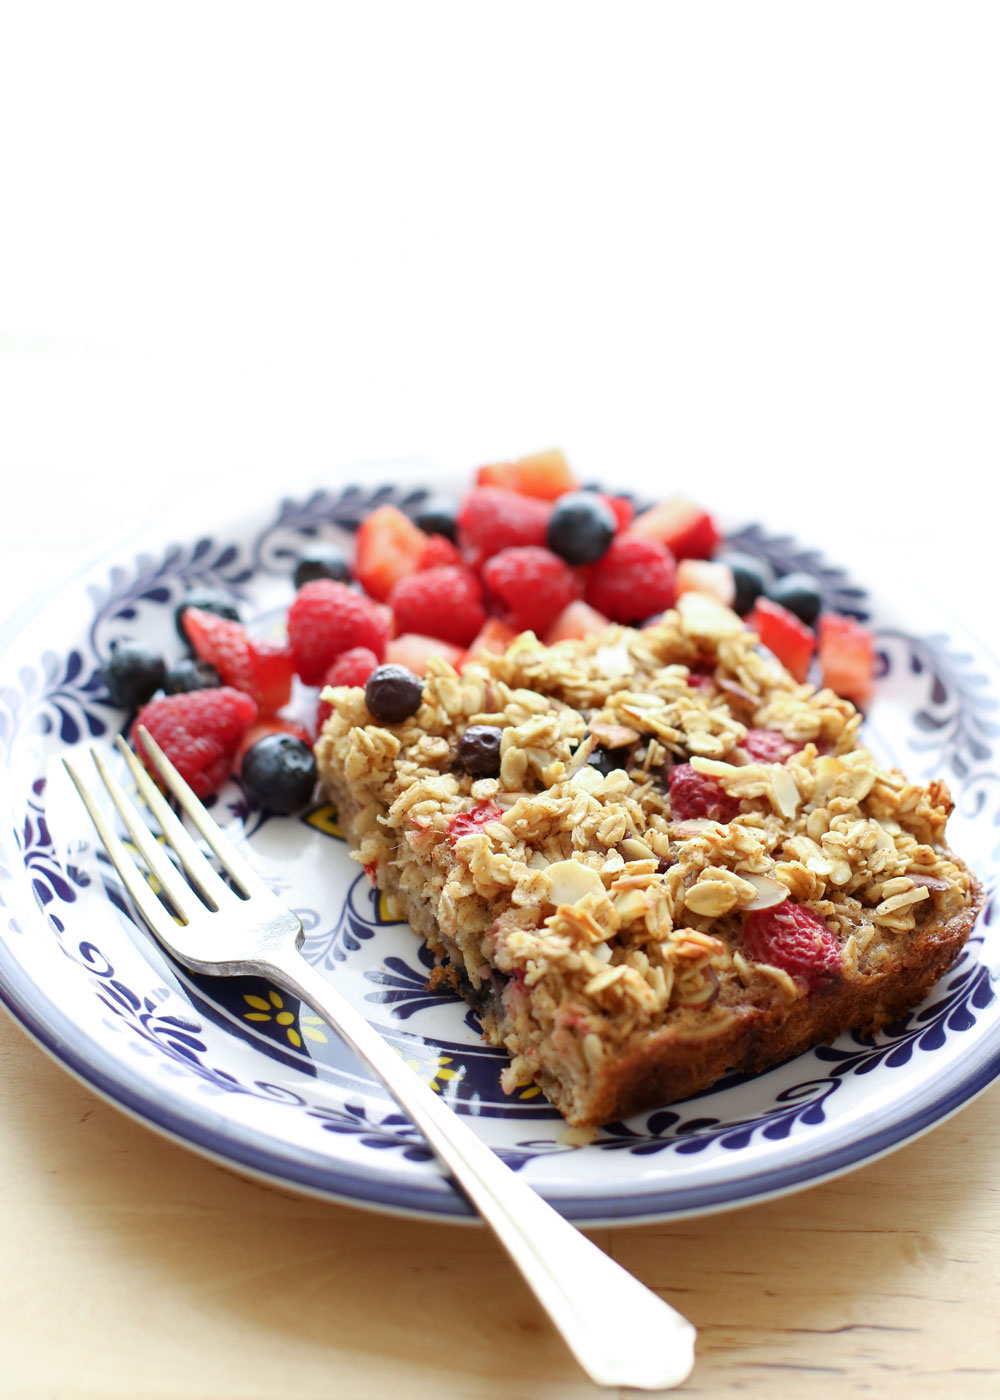 Summer Berries Baked Oatmeal recipe by Barefeet In The Kitchen